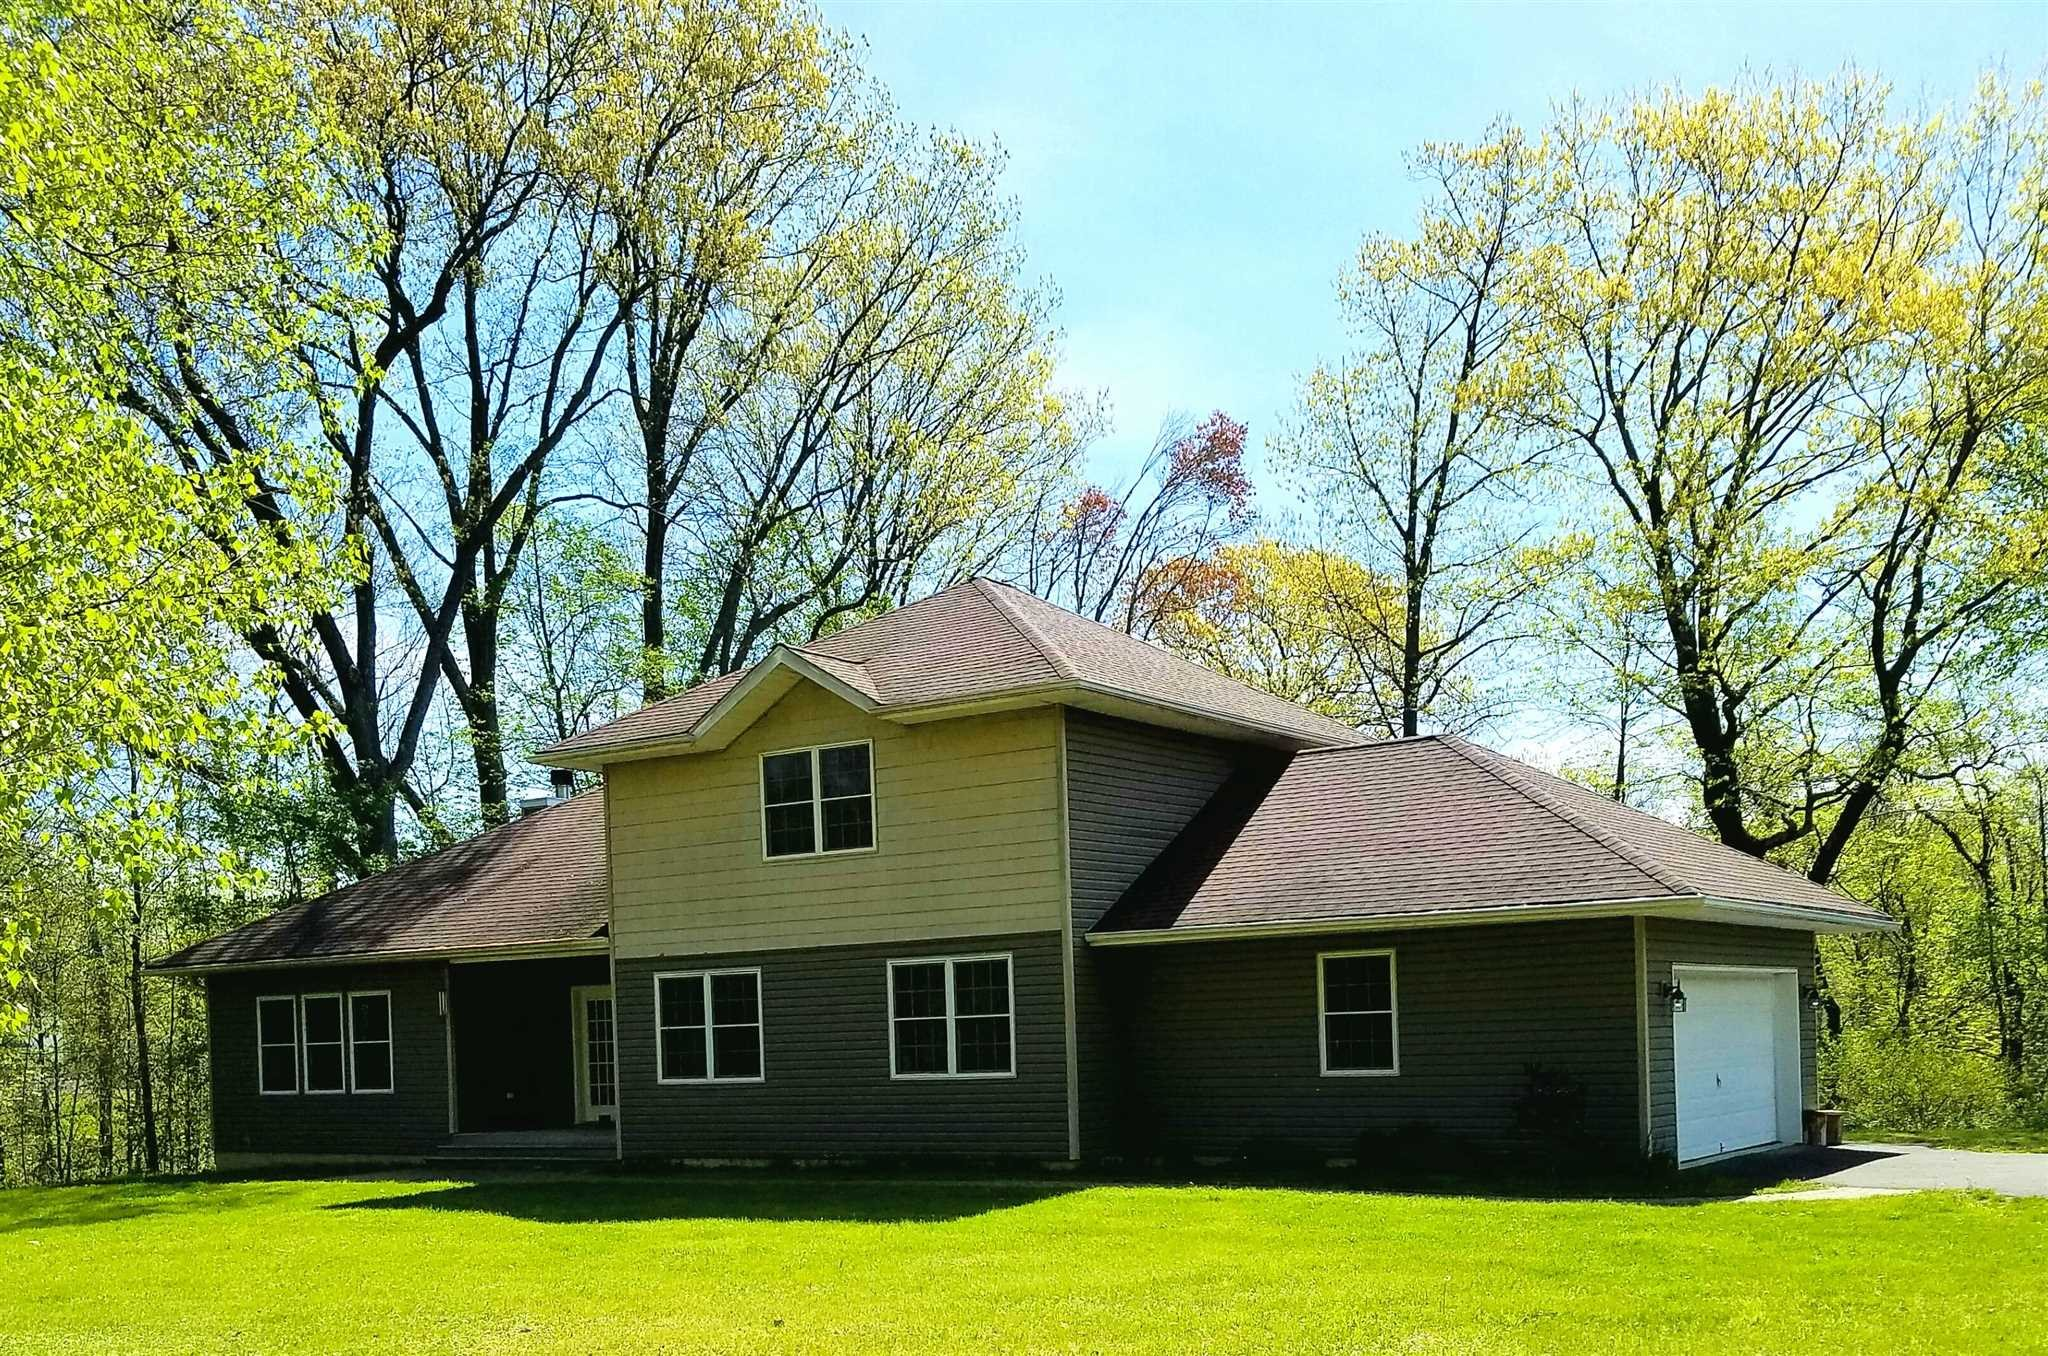 Single Family Home for Sale at 316 COMMONS ROAD 316 COMMONS ROAD Clermont, New York 12571 United States